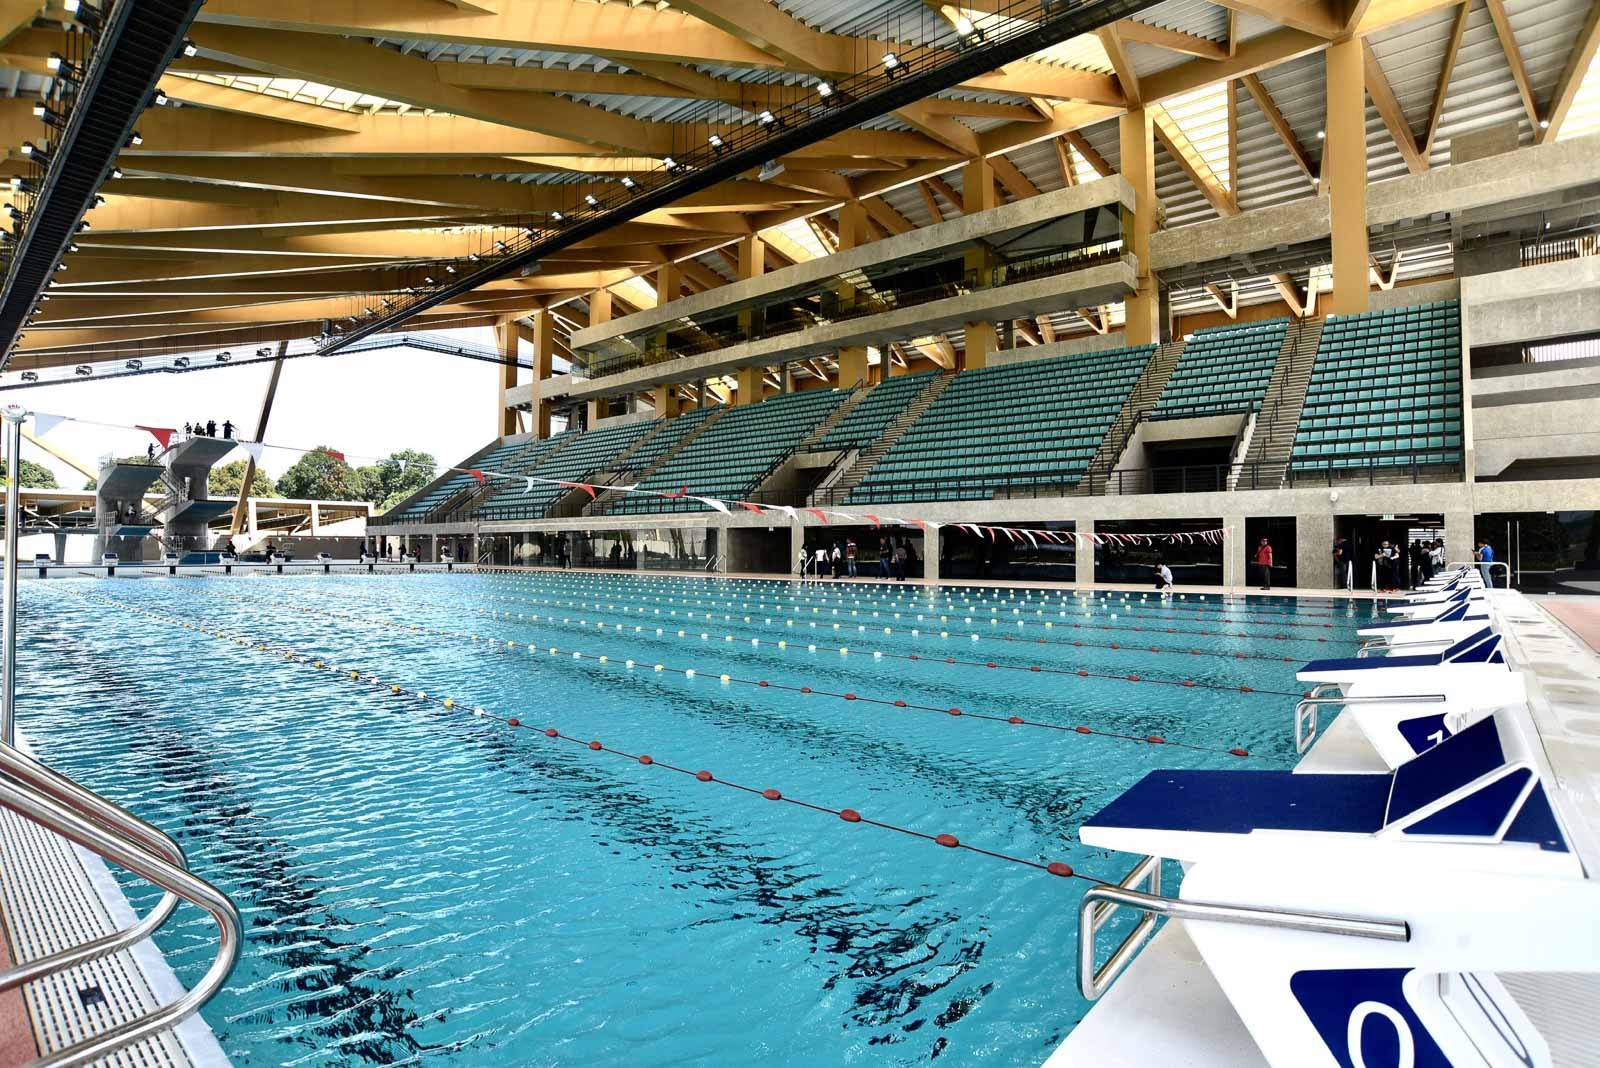 AQUATICS CENTER. The 'archipelagic lifestyle' in the Philippines is the inspiration behind the aquatics center, which has an 8-lane training pool, a 10-lane competition pool, and a 5-meter maximum depth diving pool with inland diving training facility. Photo by Angie de Silva/Rappler